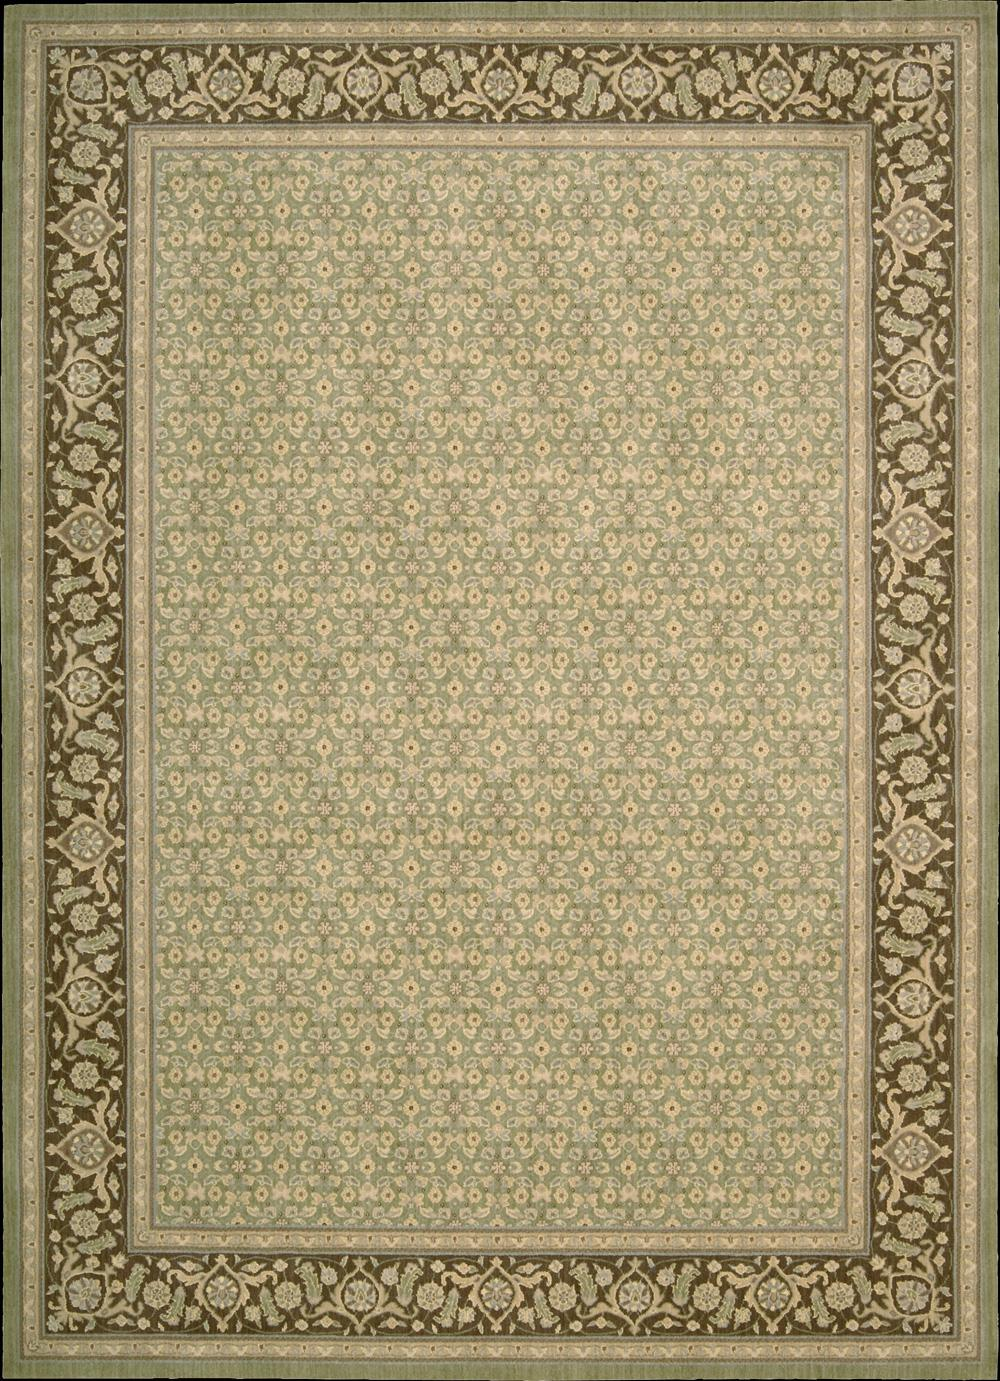 "Nourison Persian Empire Area Rug 7'9"" x 10'10"" - Item Number: 44292"